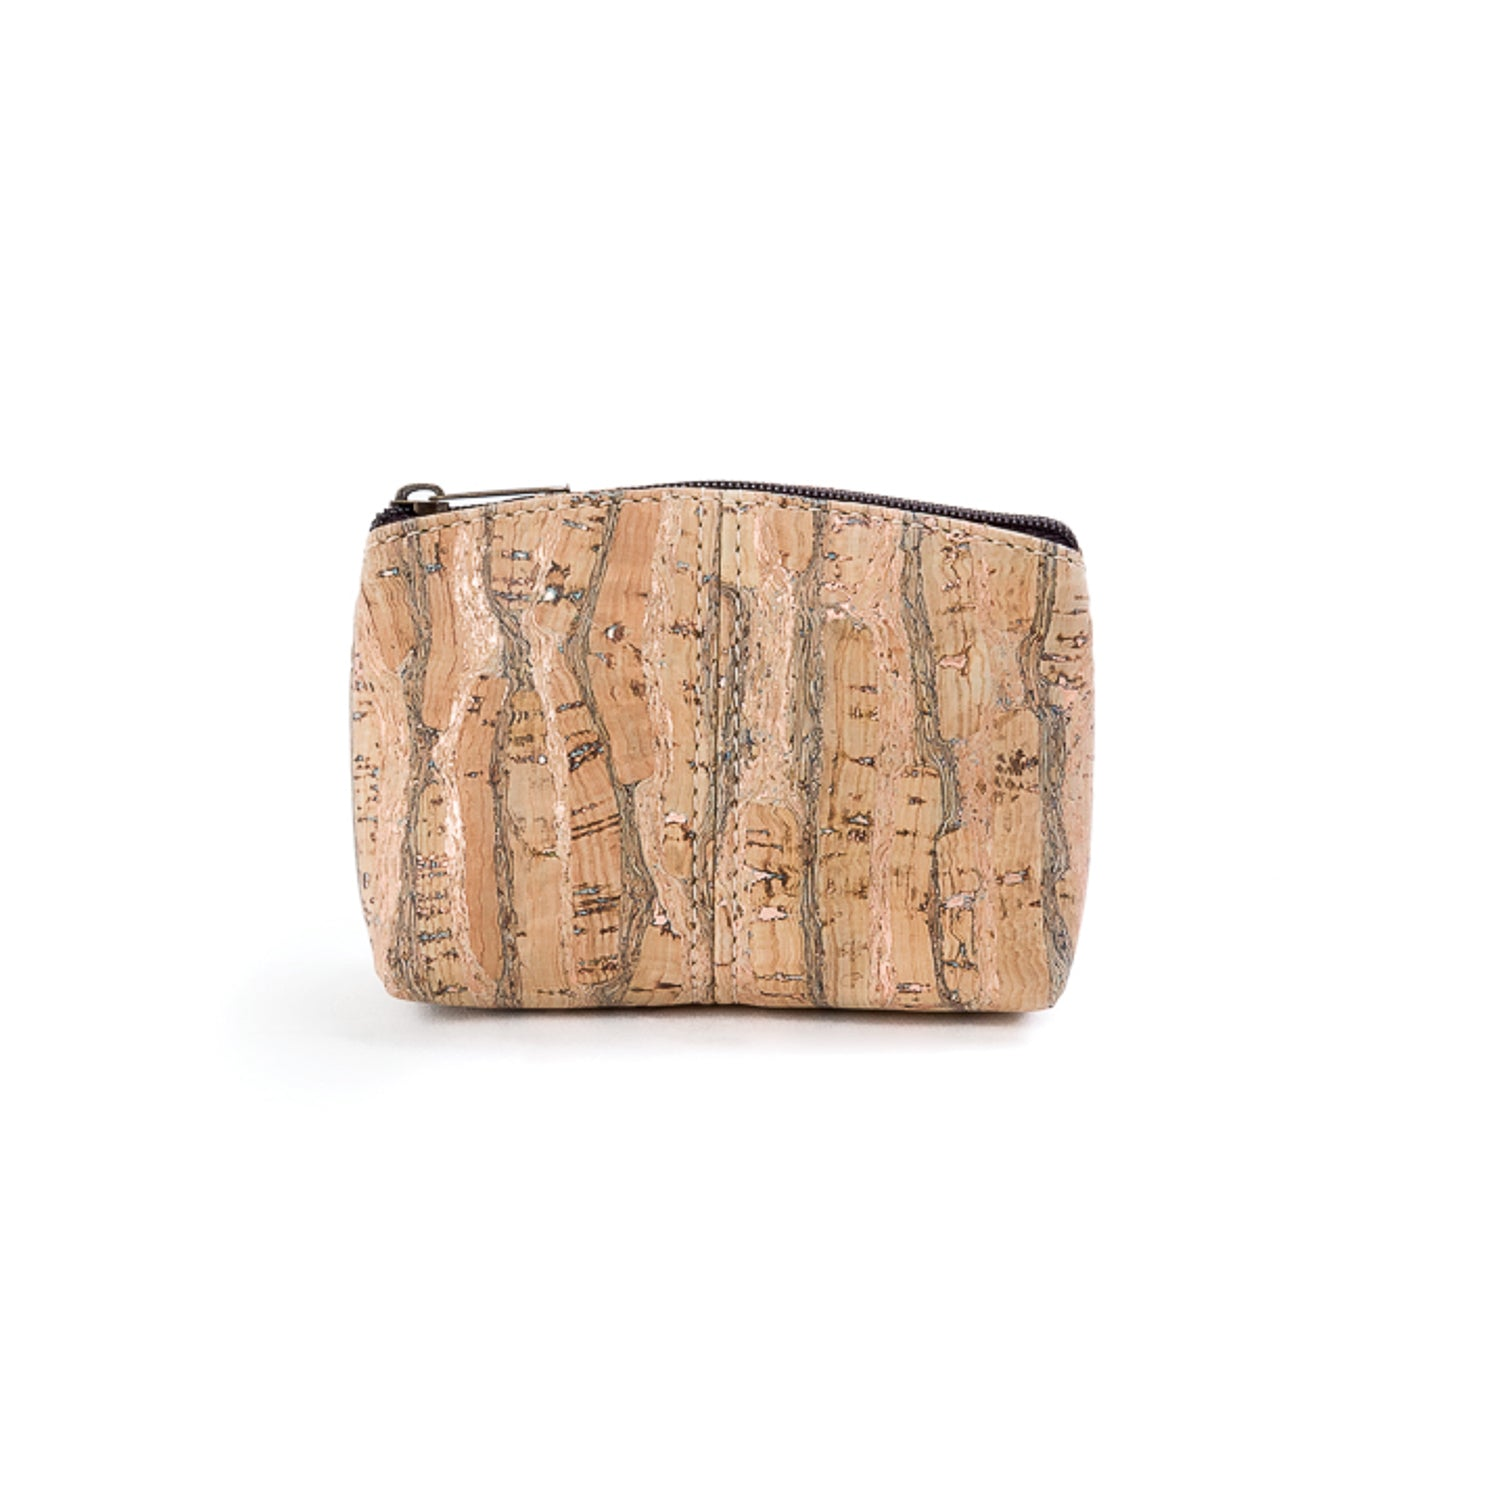 Cork mini purse COPPER